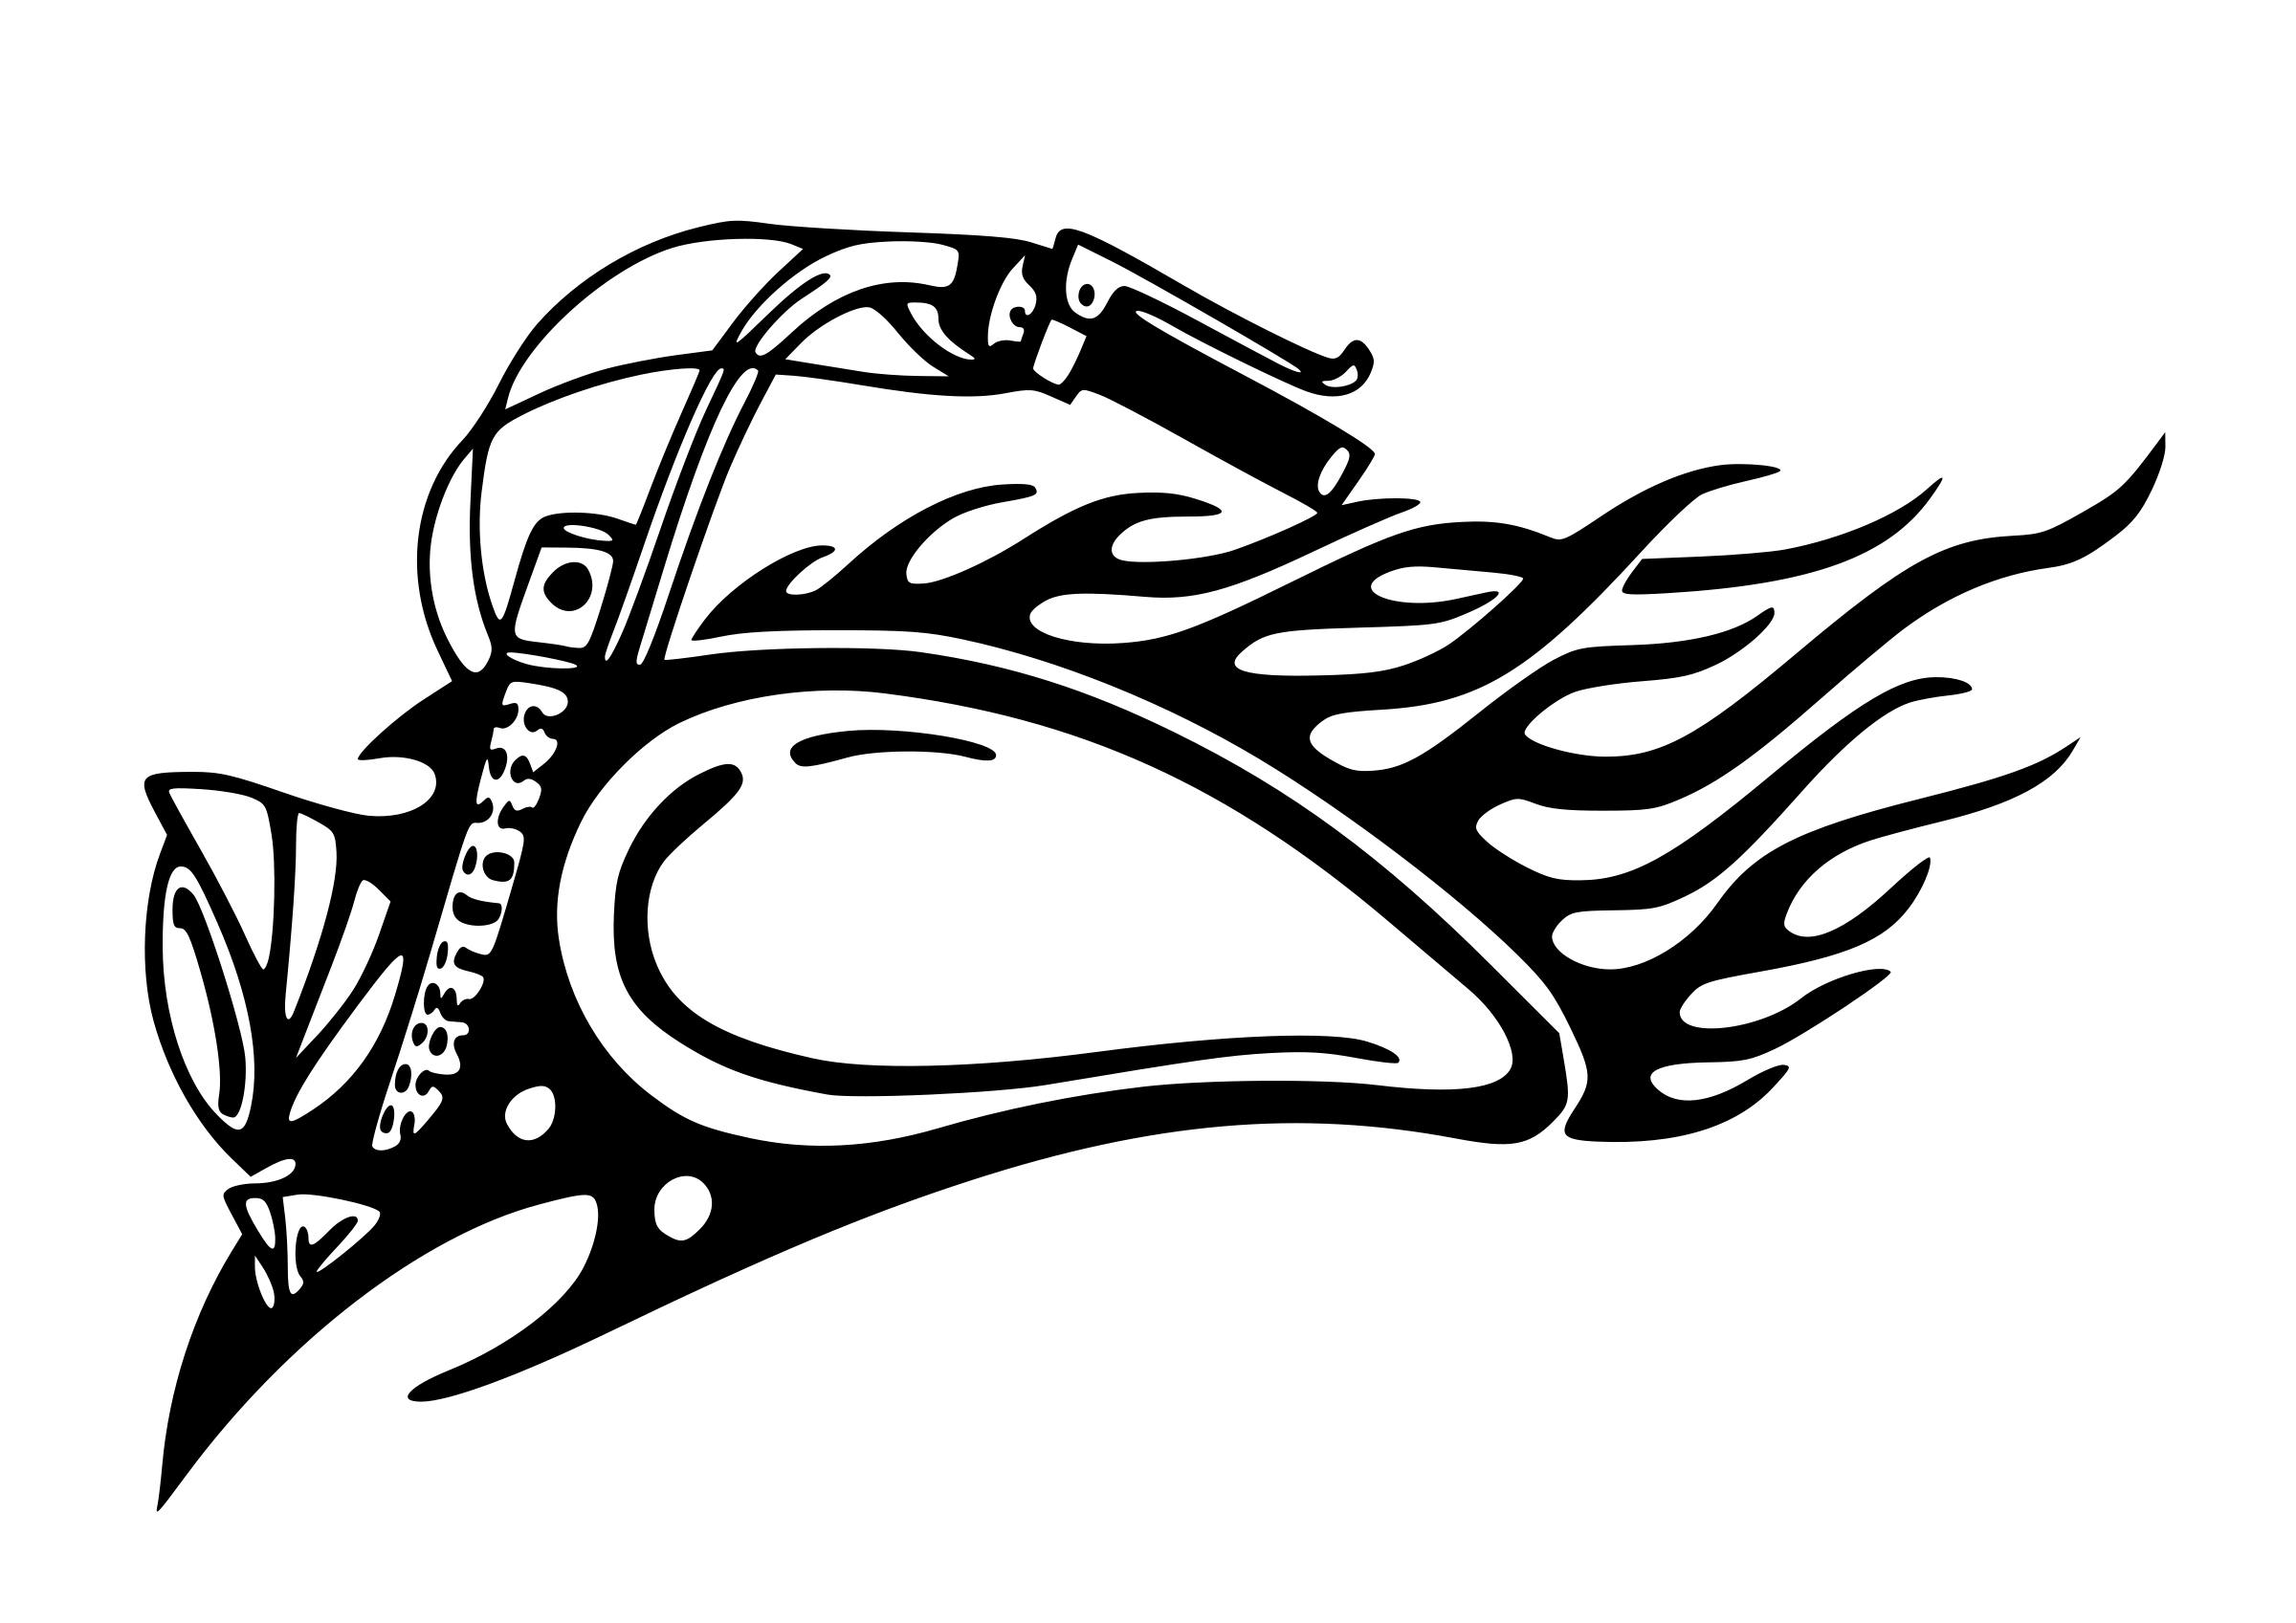 Free Motorcycle Flames Cliparts Download Free Clip Art